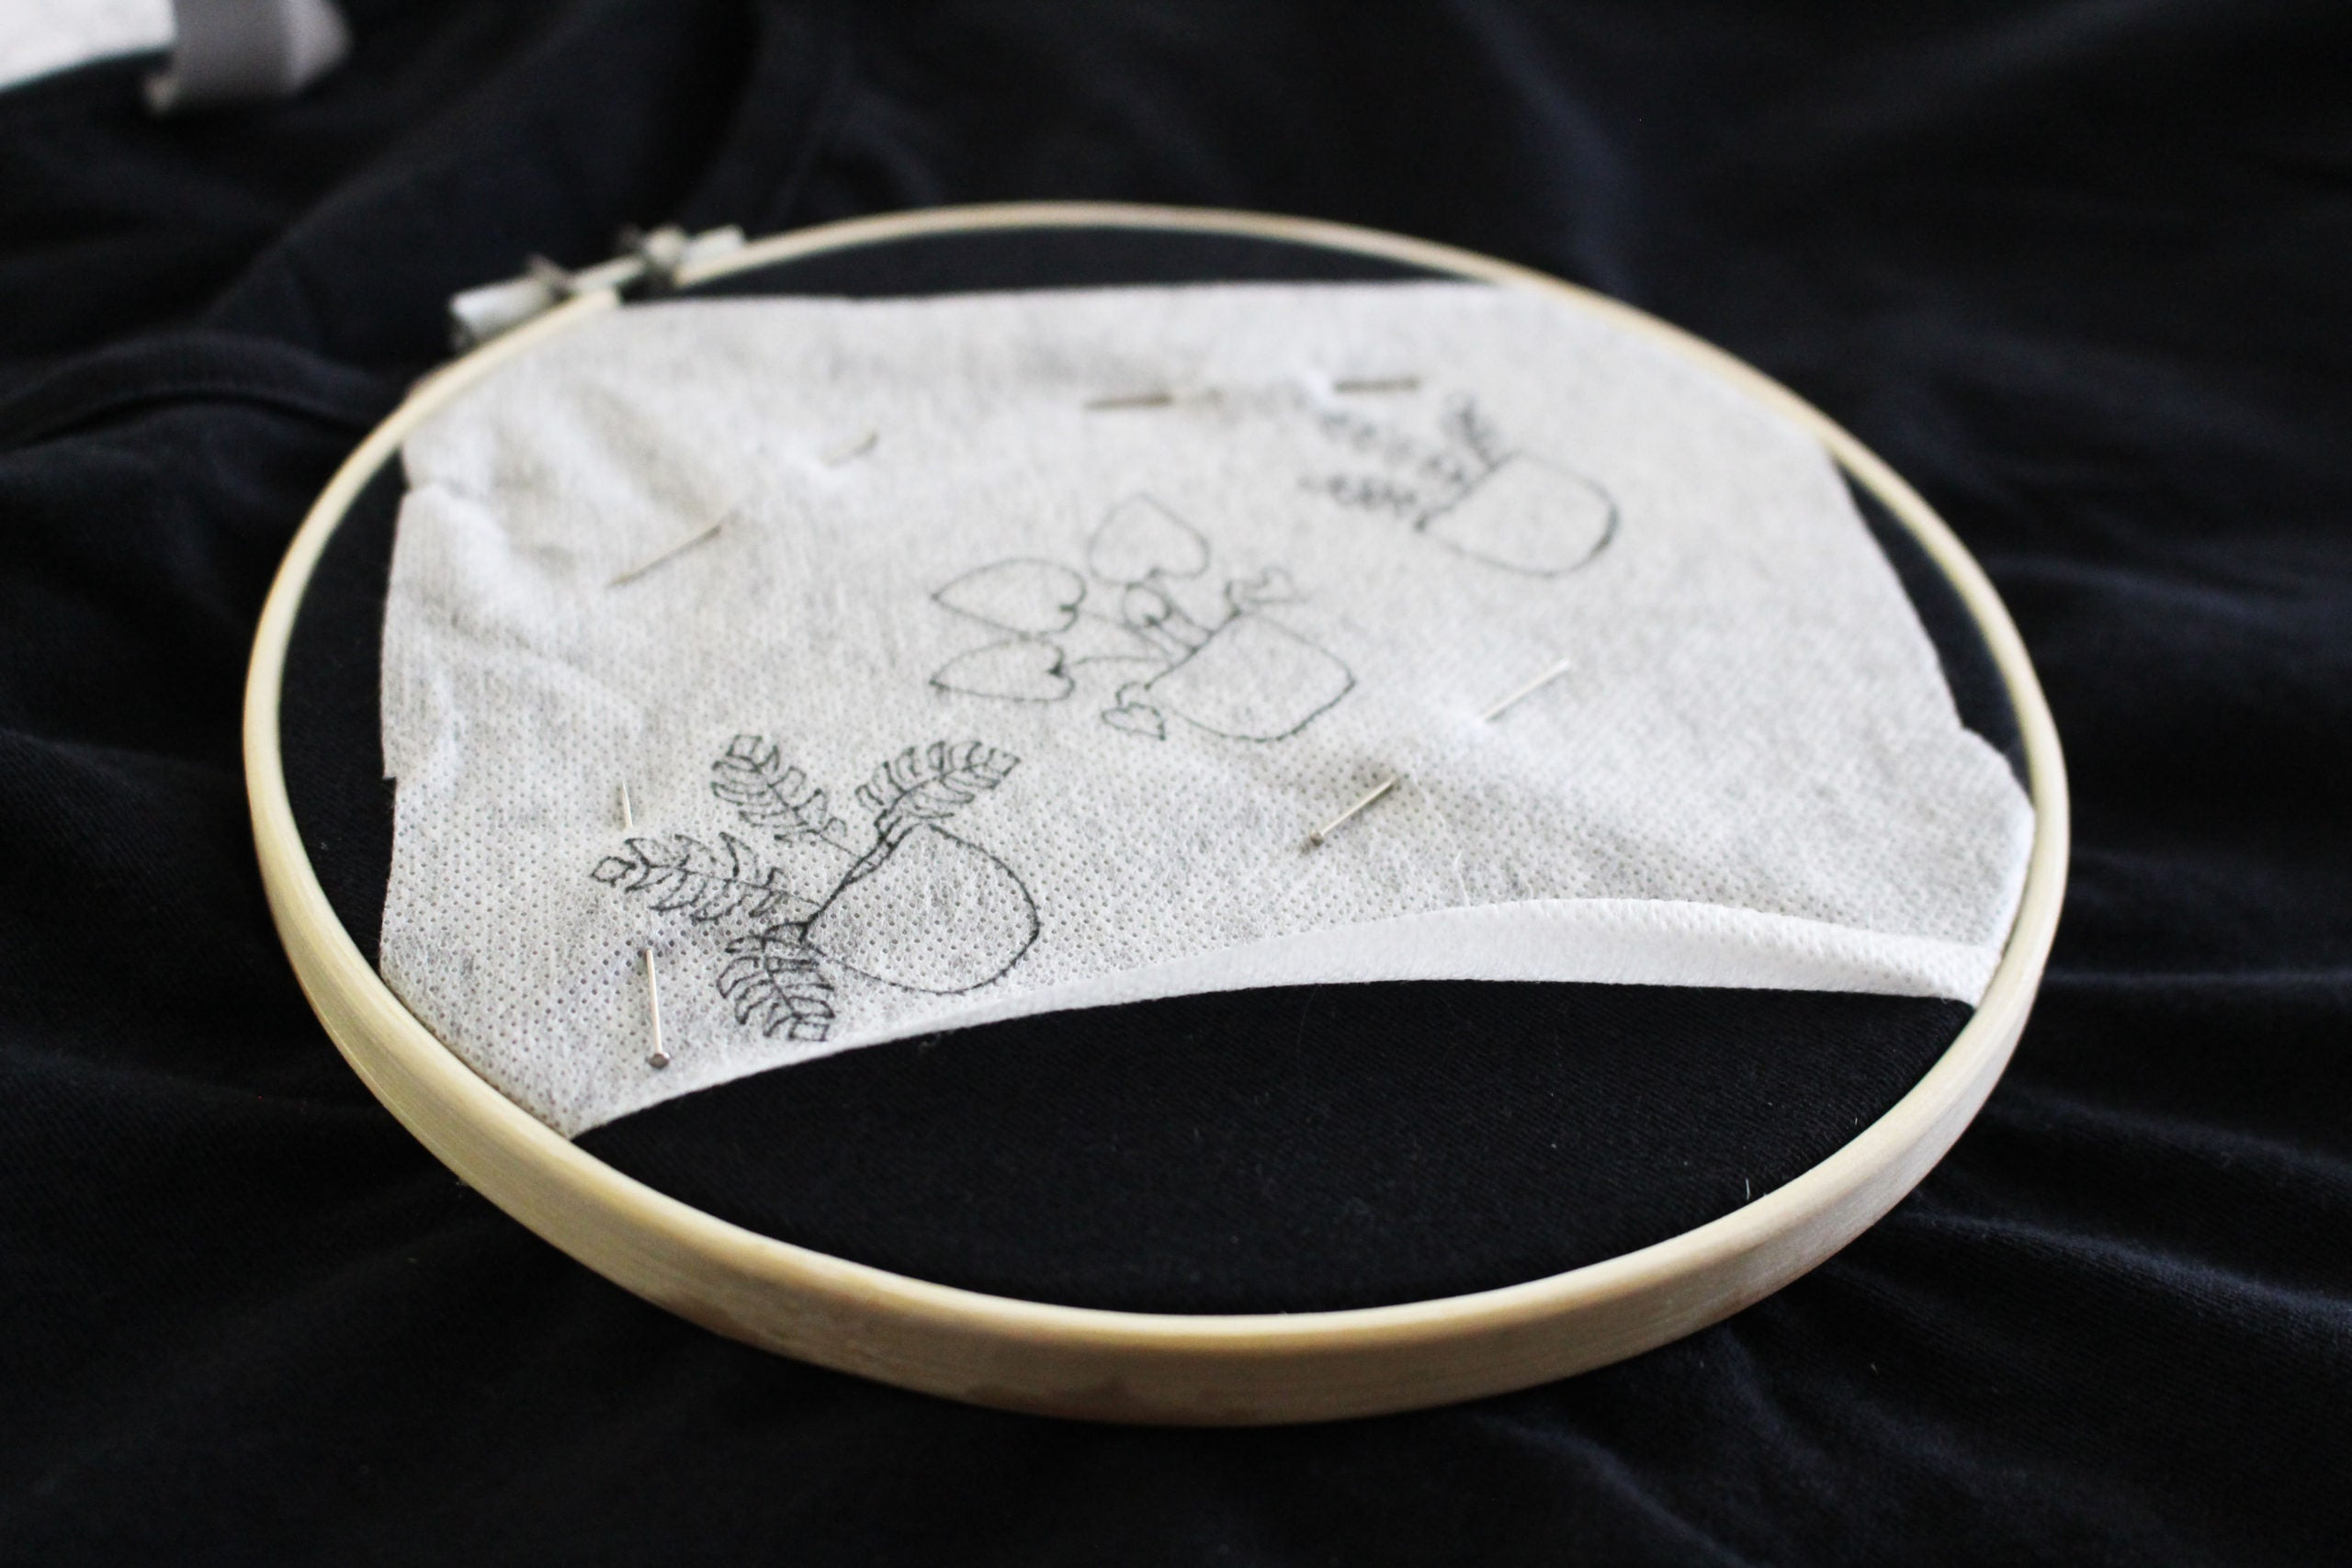 how to use water soluble stabilizer for embroidery